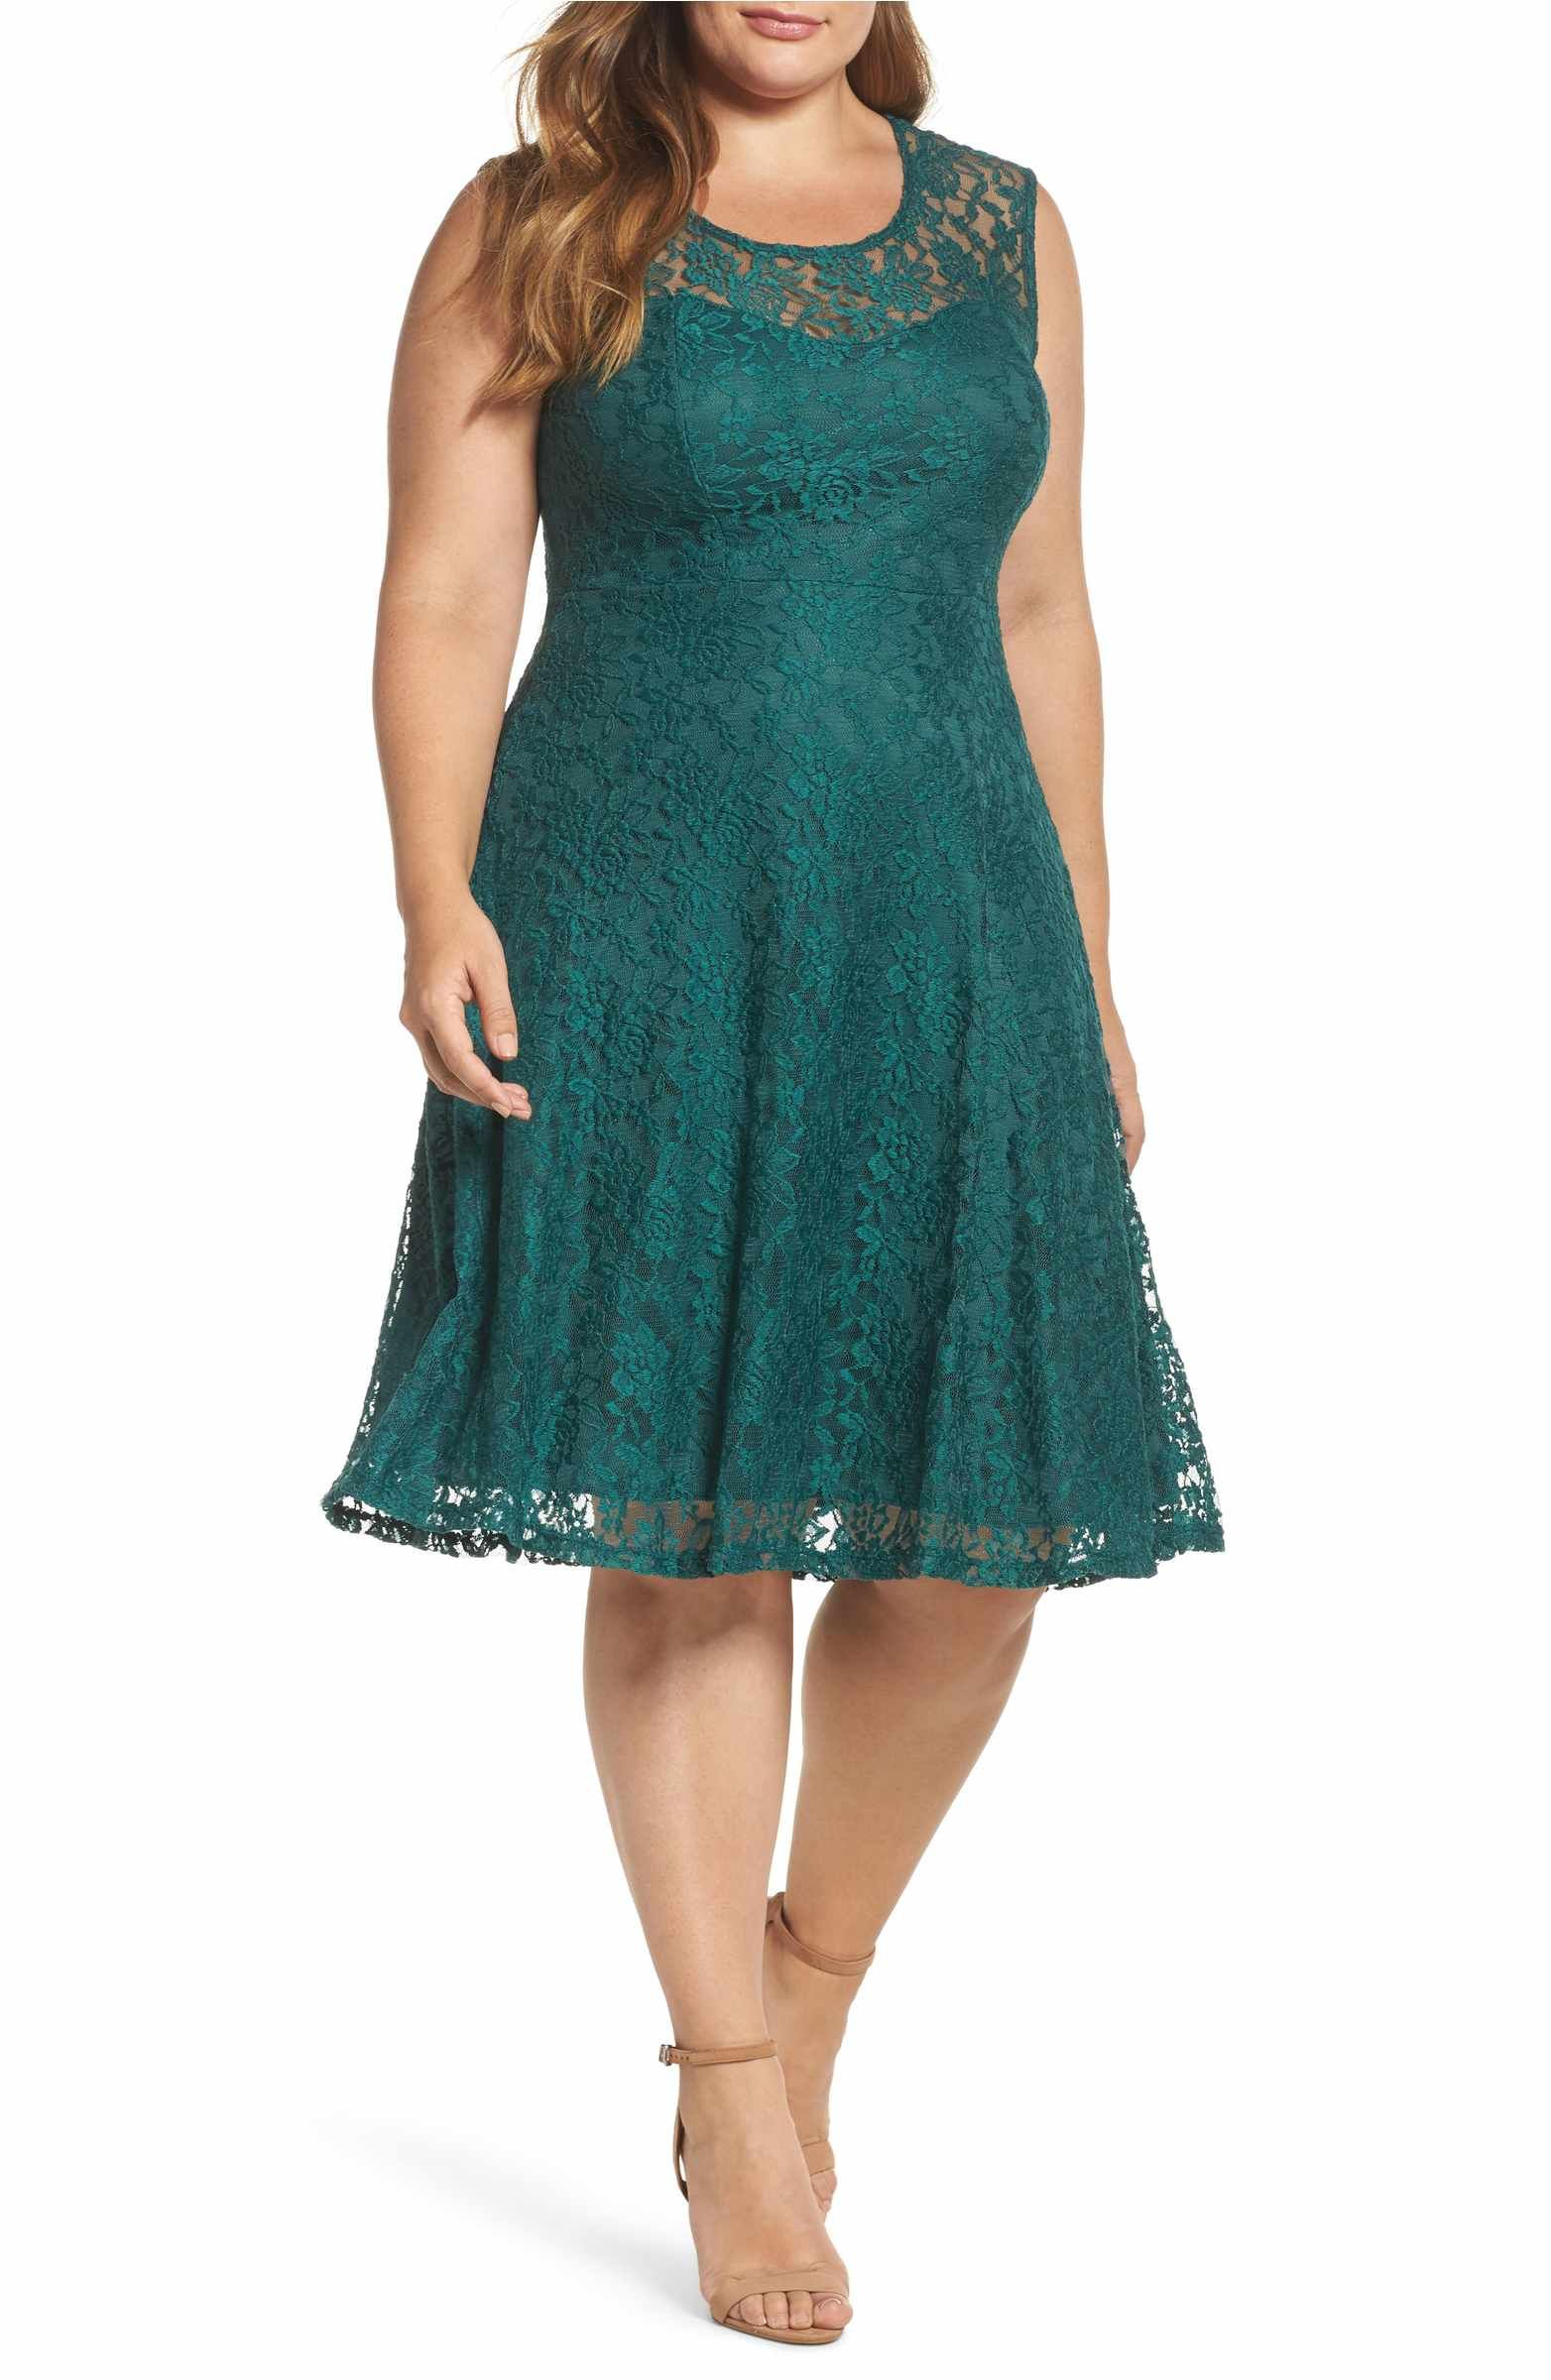 Main Image - Soprano Lace Skater Dress | Date Night | Pinterest ...